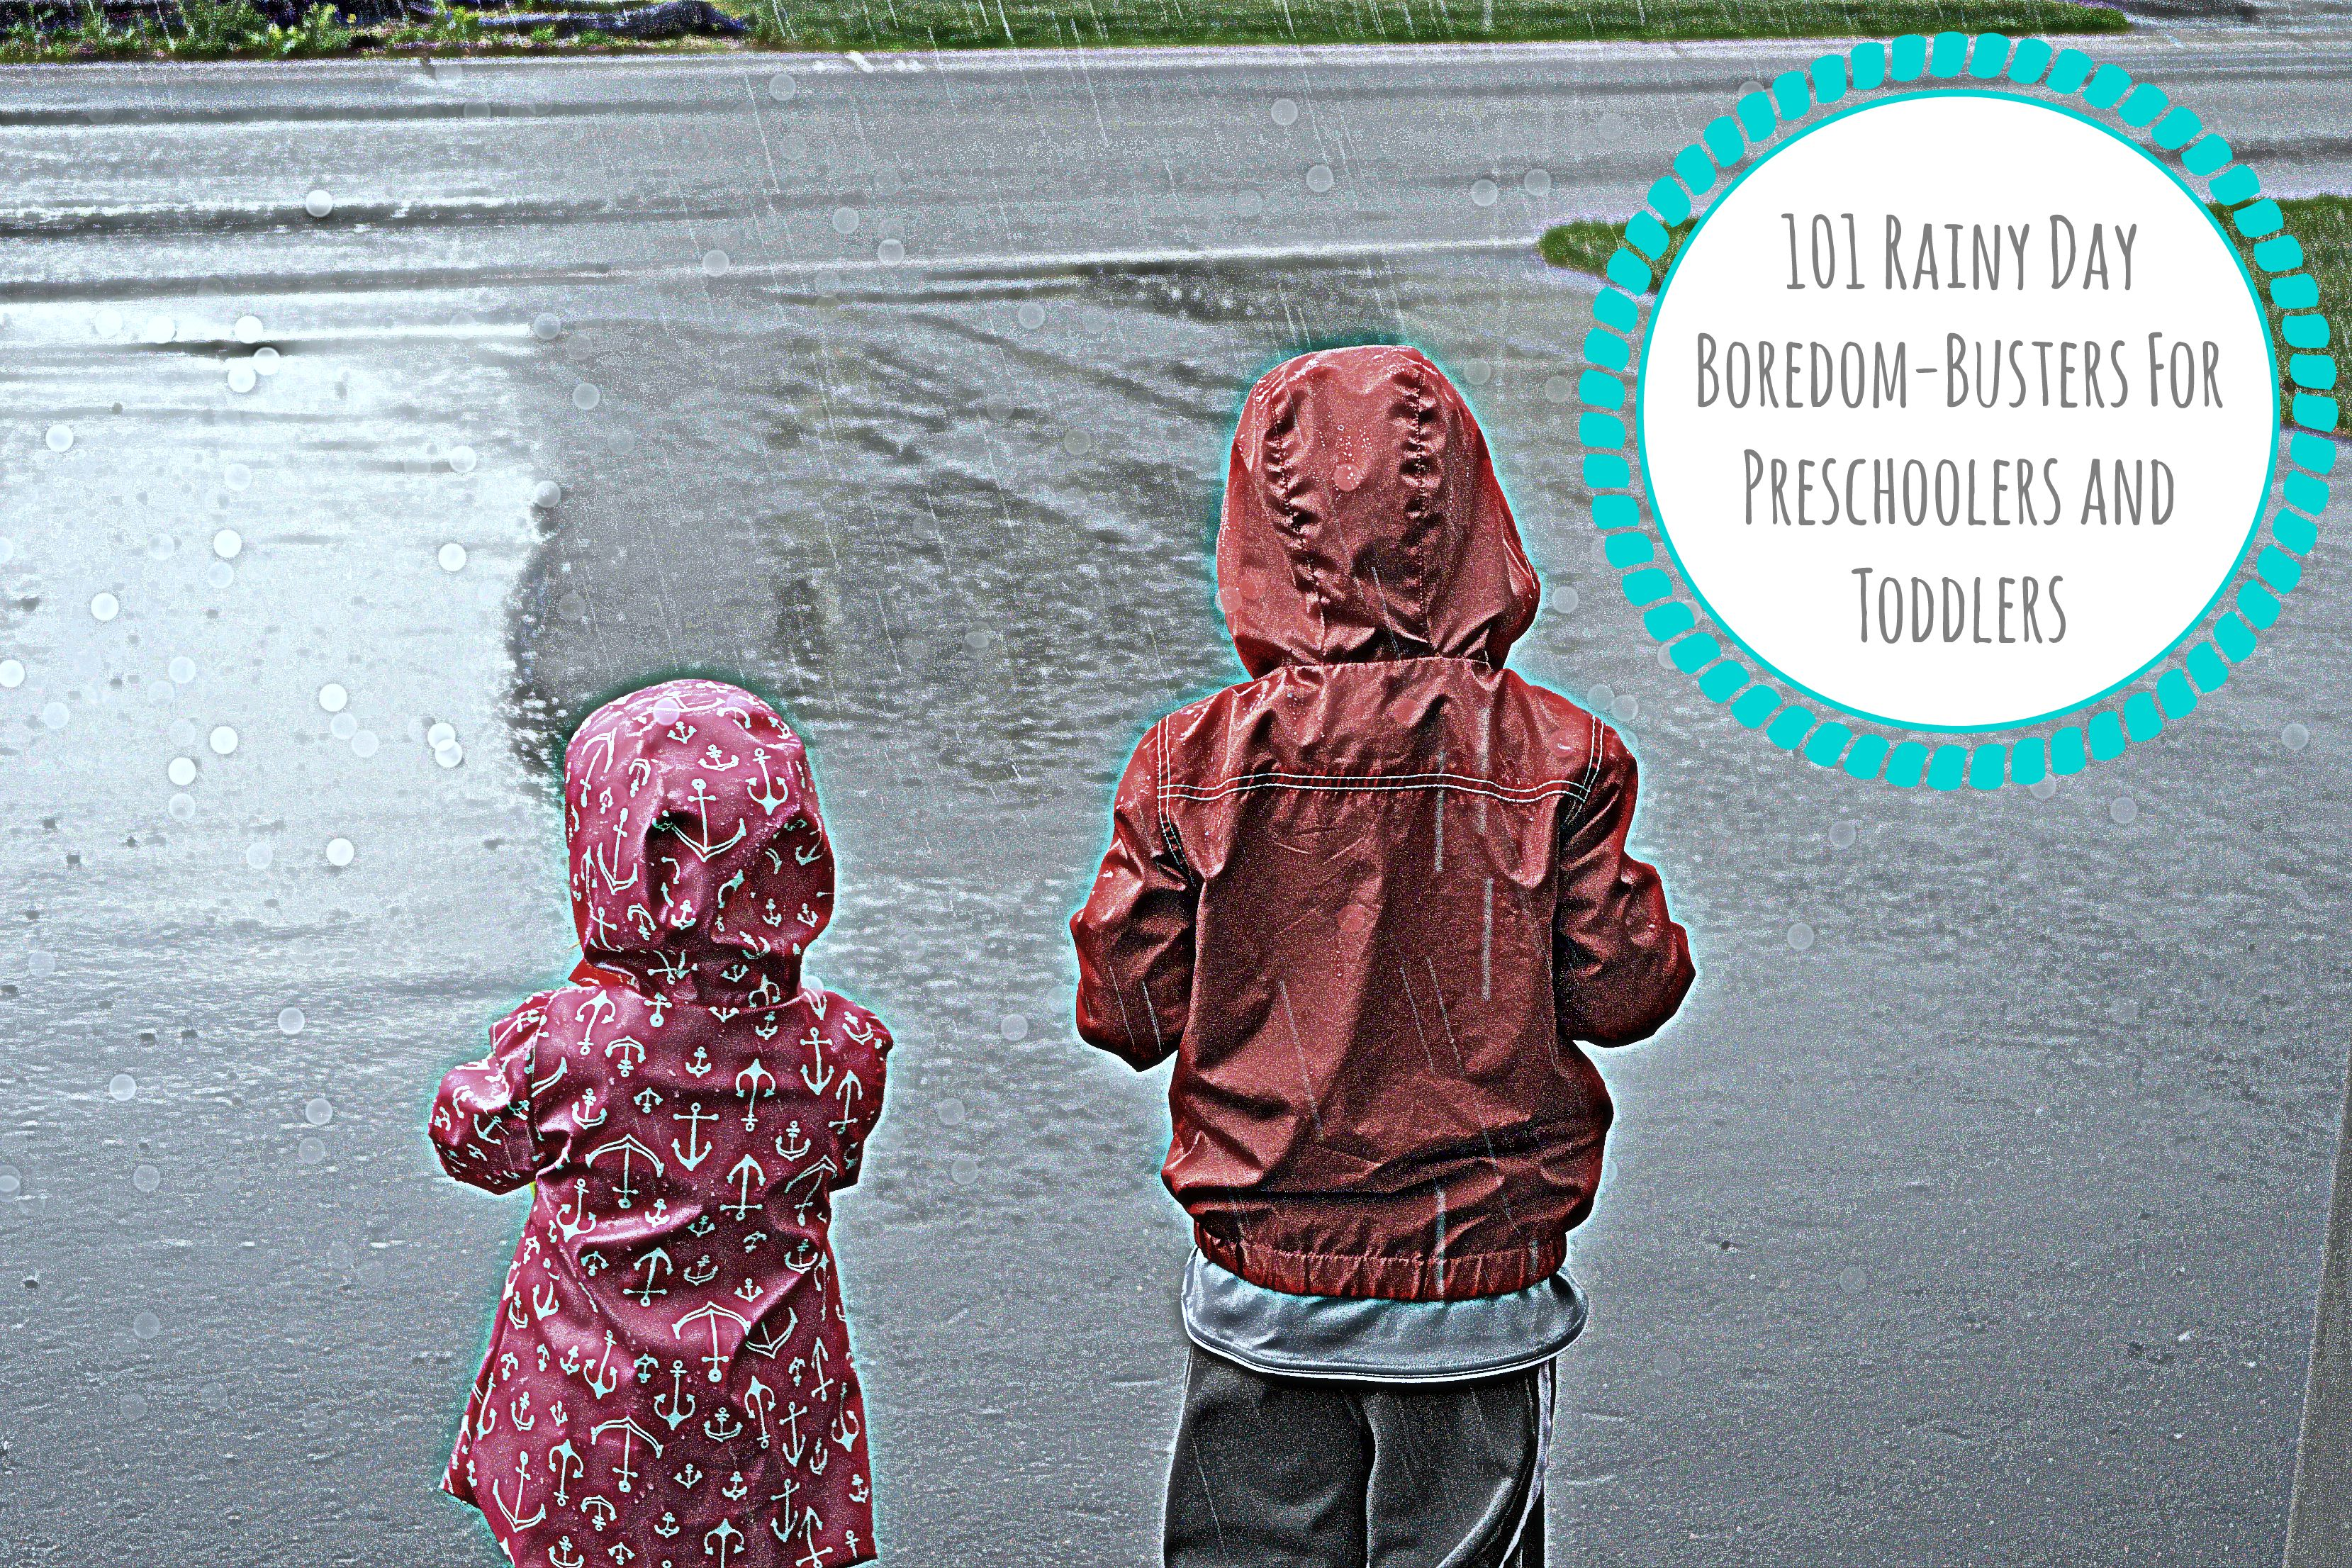 101 Rainy Day Boredom Busters For Preschoolers And